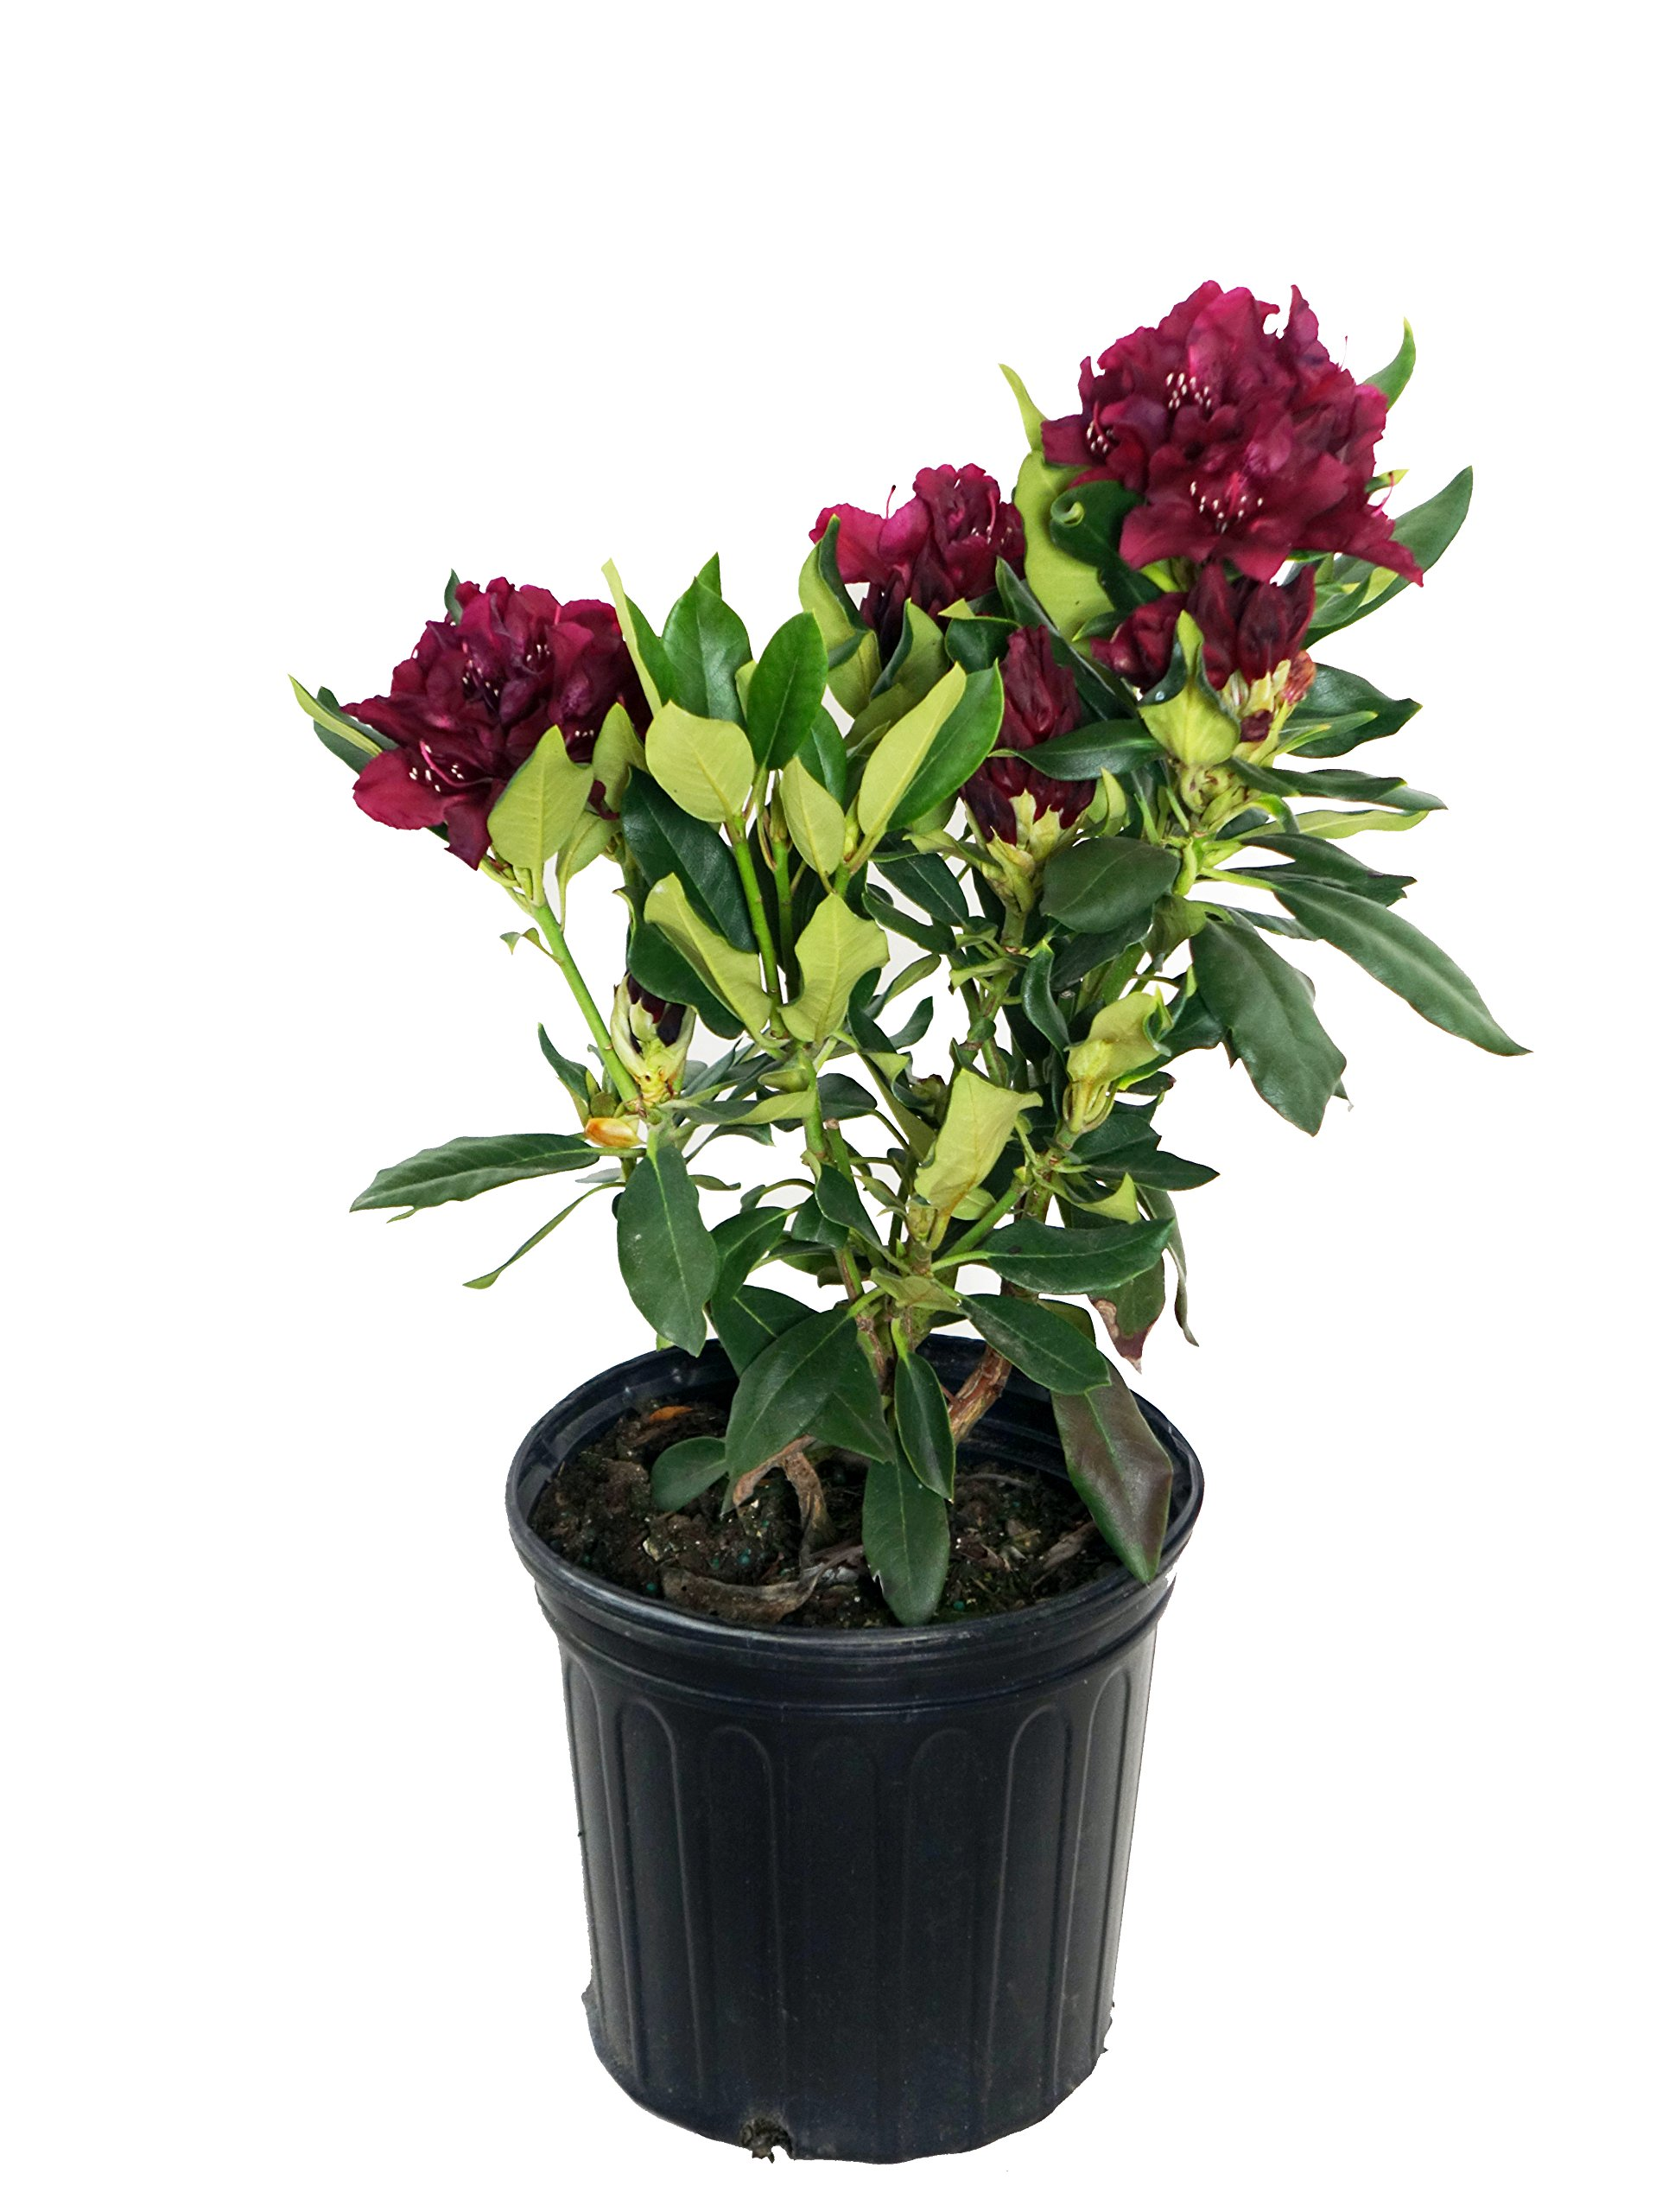 Rhododendron 'Dark Lord' (Rhododendron) Evergreen, Burgundy red Flowers, 2 - Size Container